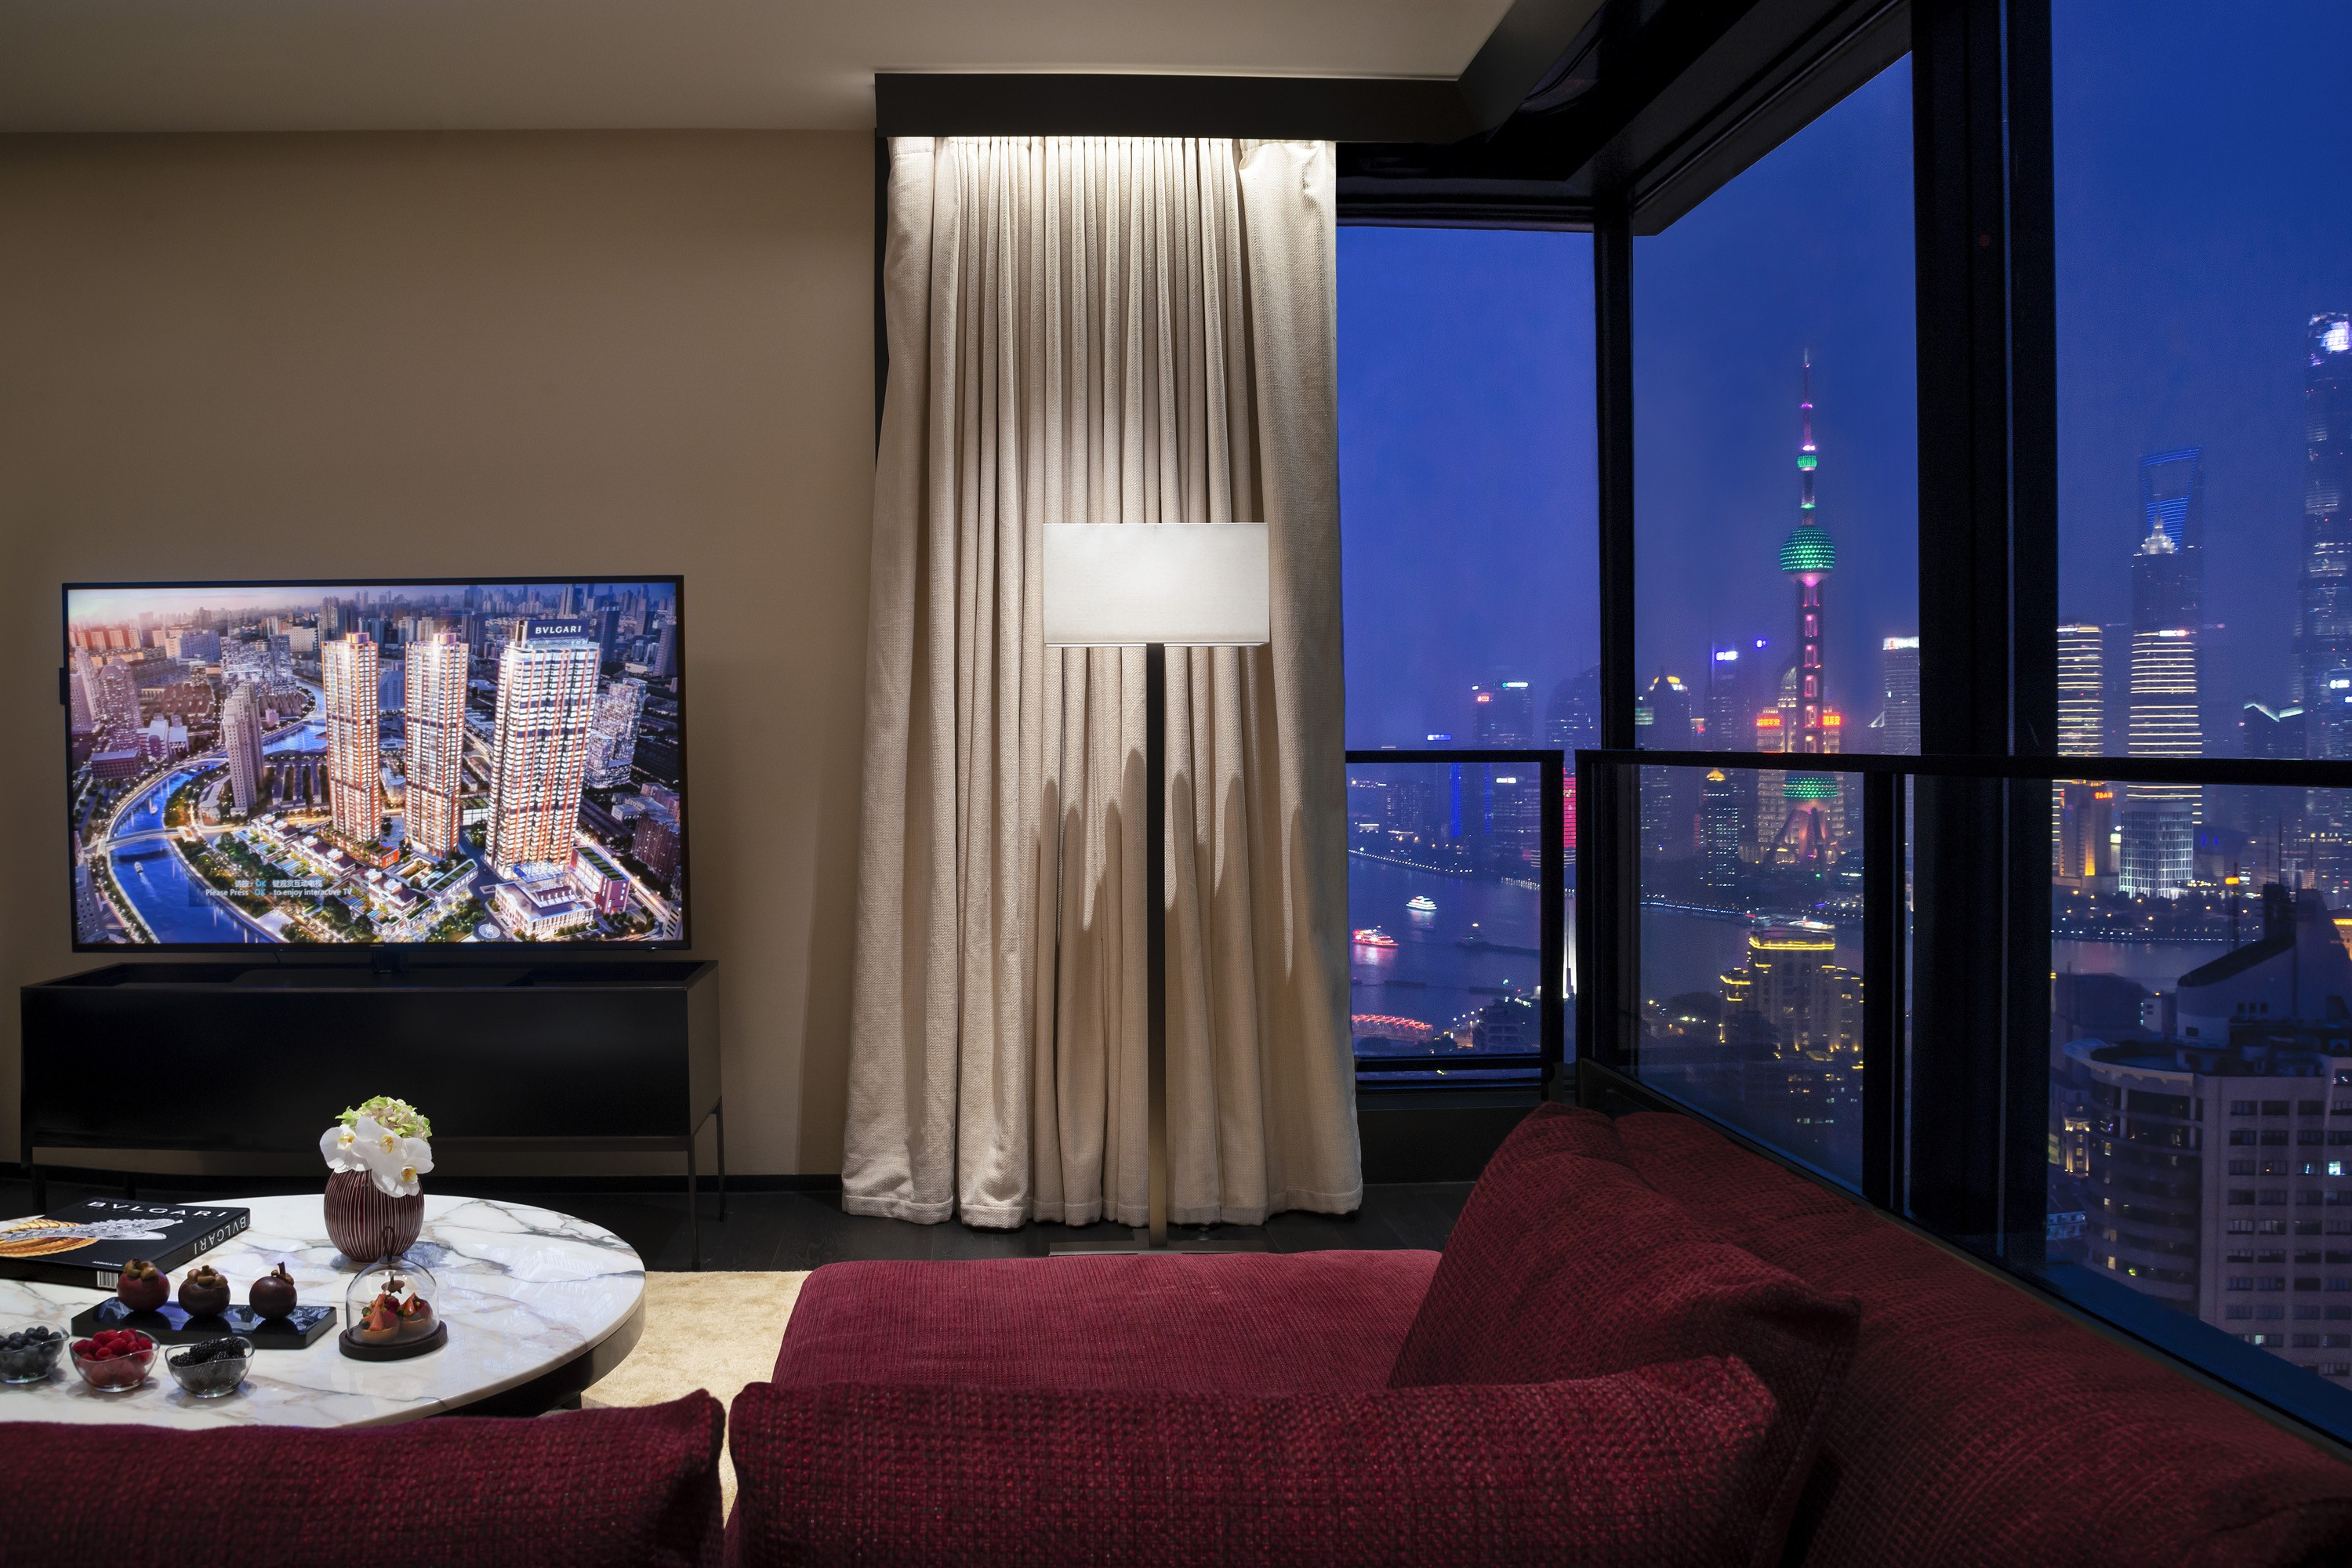 Bulgari Hotel Shanghai is maison's latest jewel in the hospitality necklace  | South China Morning Post